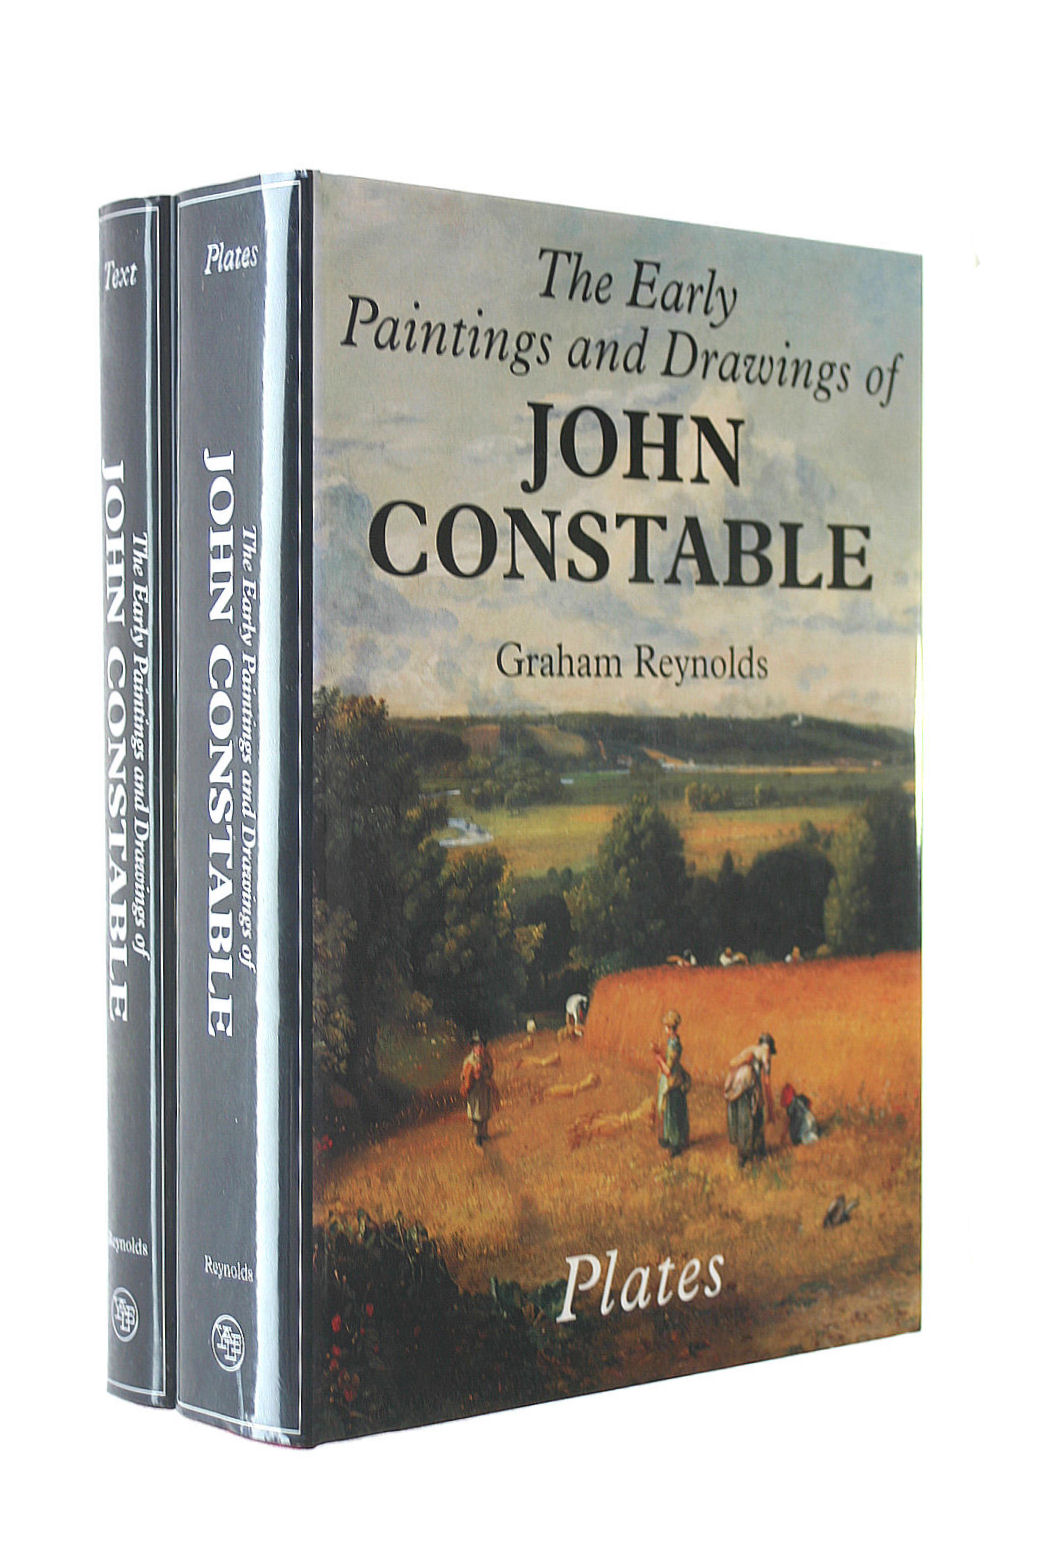 Image for The Early Paintings and Drawings of John Constable. 2 Volume set, Text and Plates